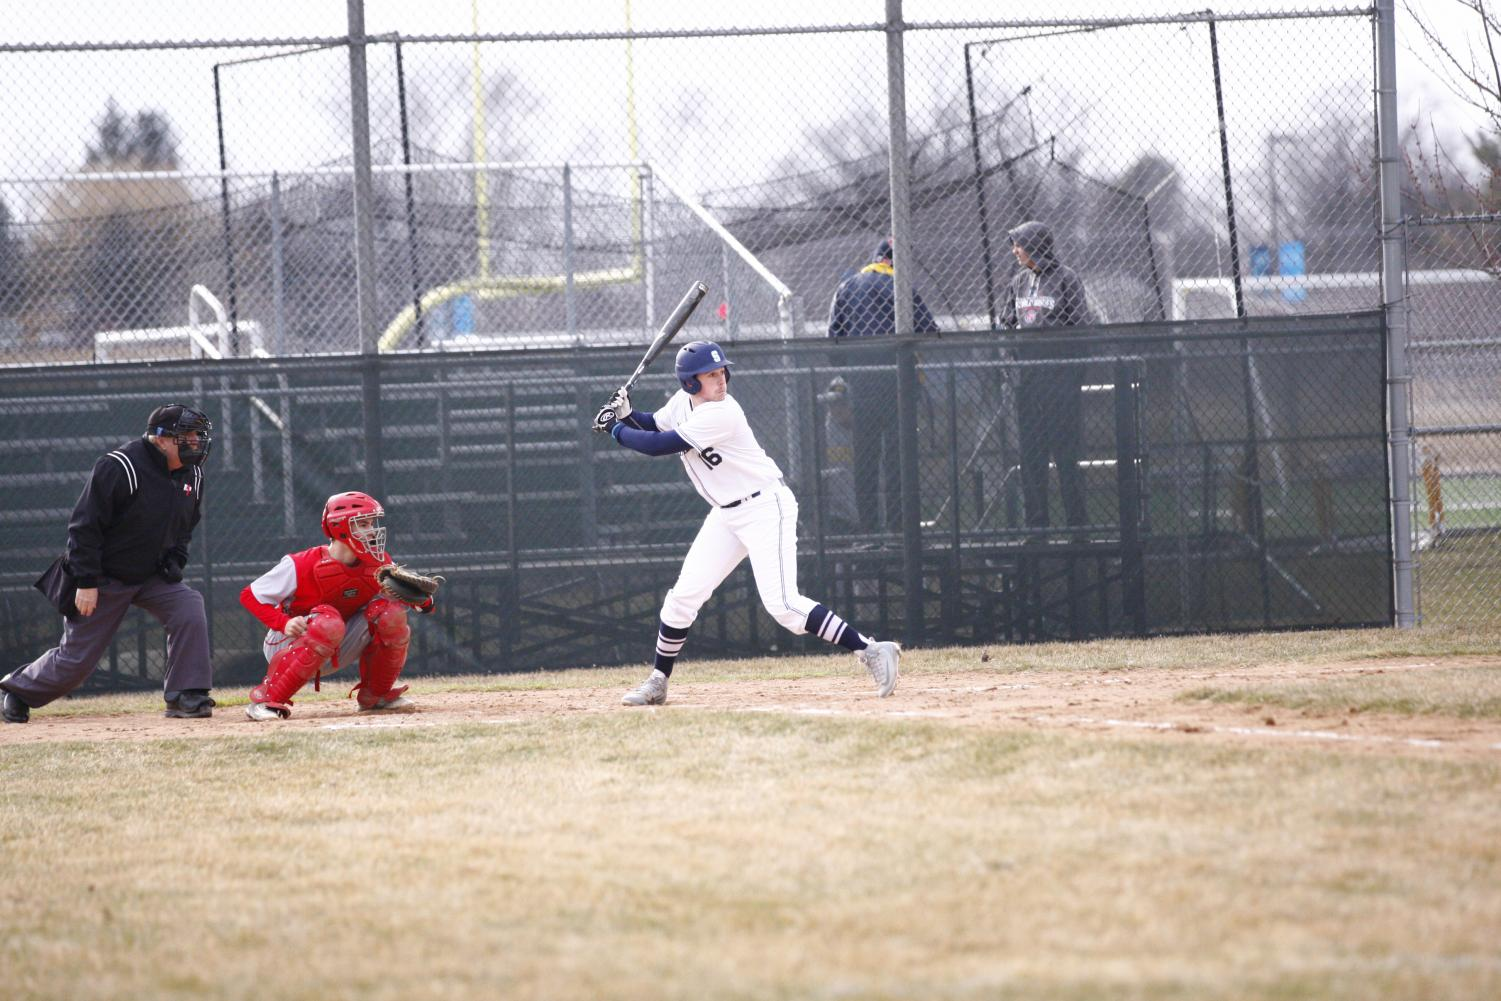 HITTIN' DINGERS:  Eyeing the pitch, senior Jacob Newman looks to connect with the ball against Deerfield. The Titans fell to the Warriors 15 to 4.